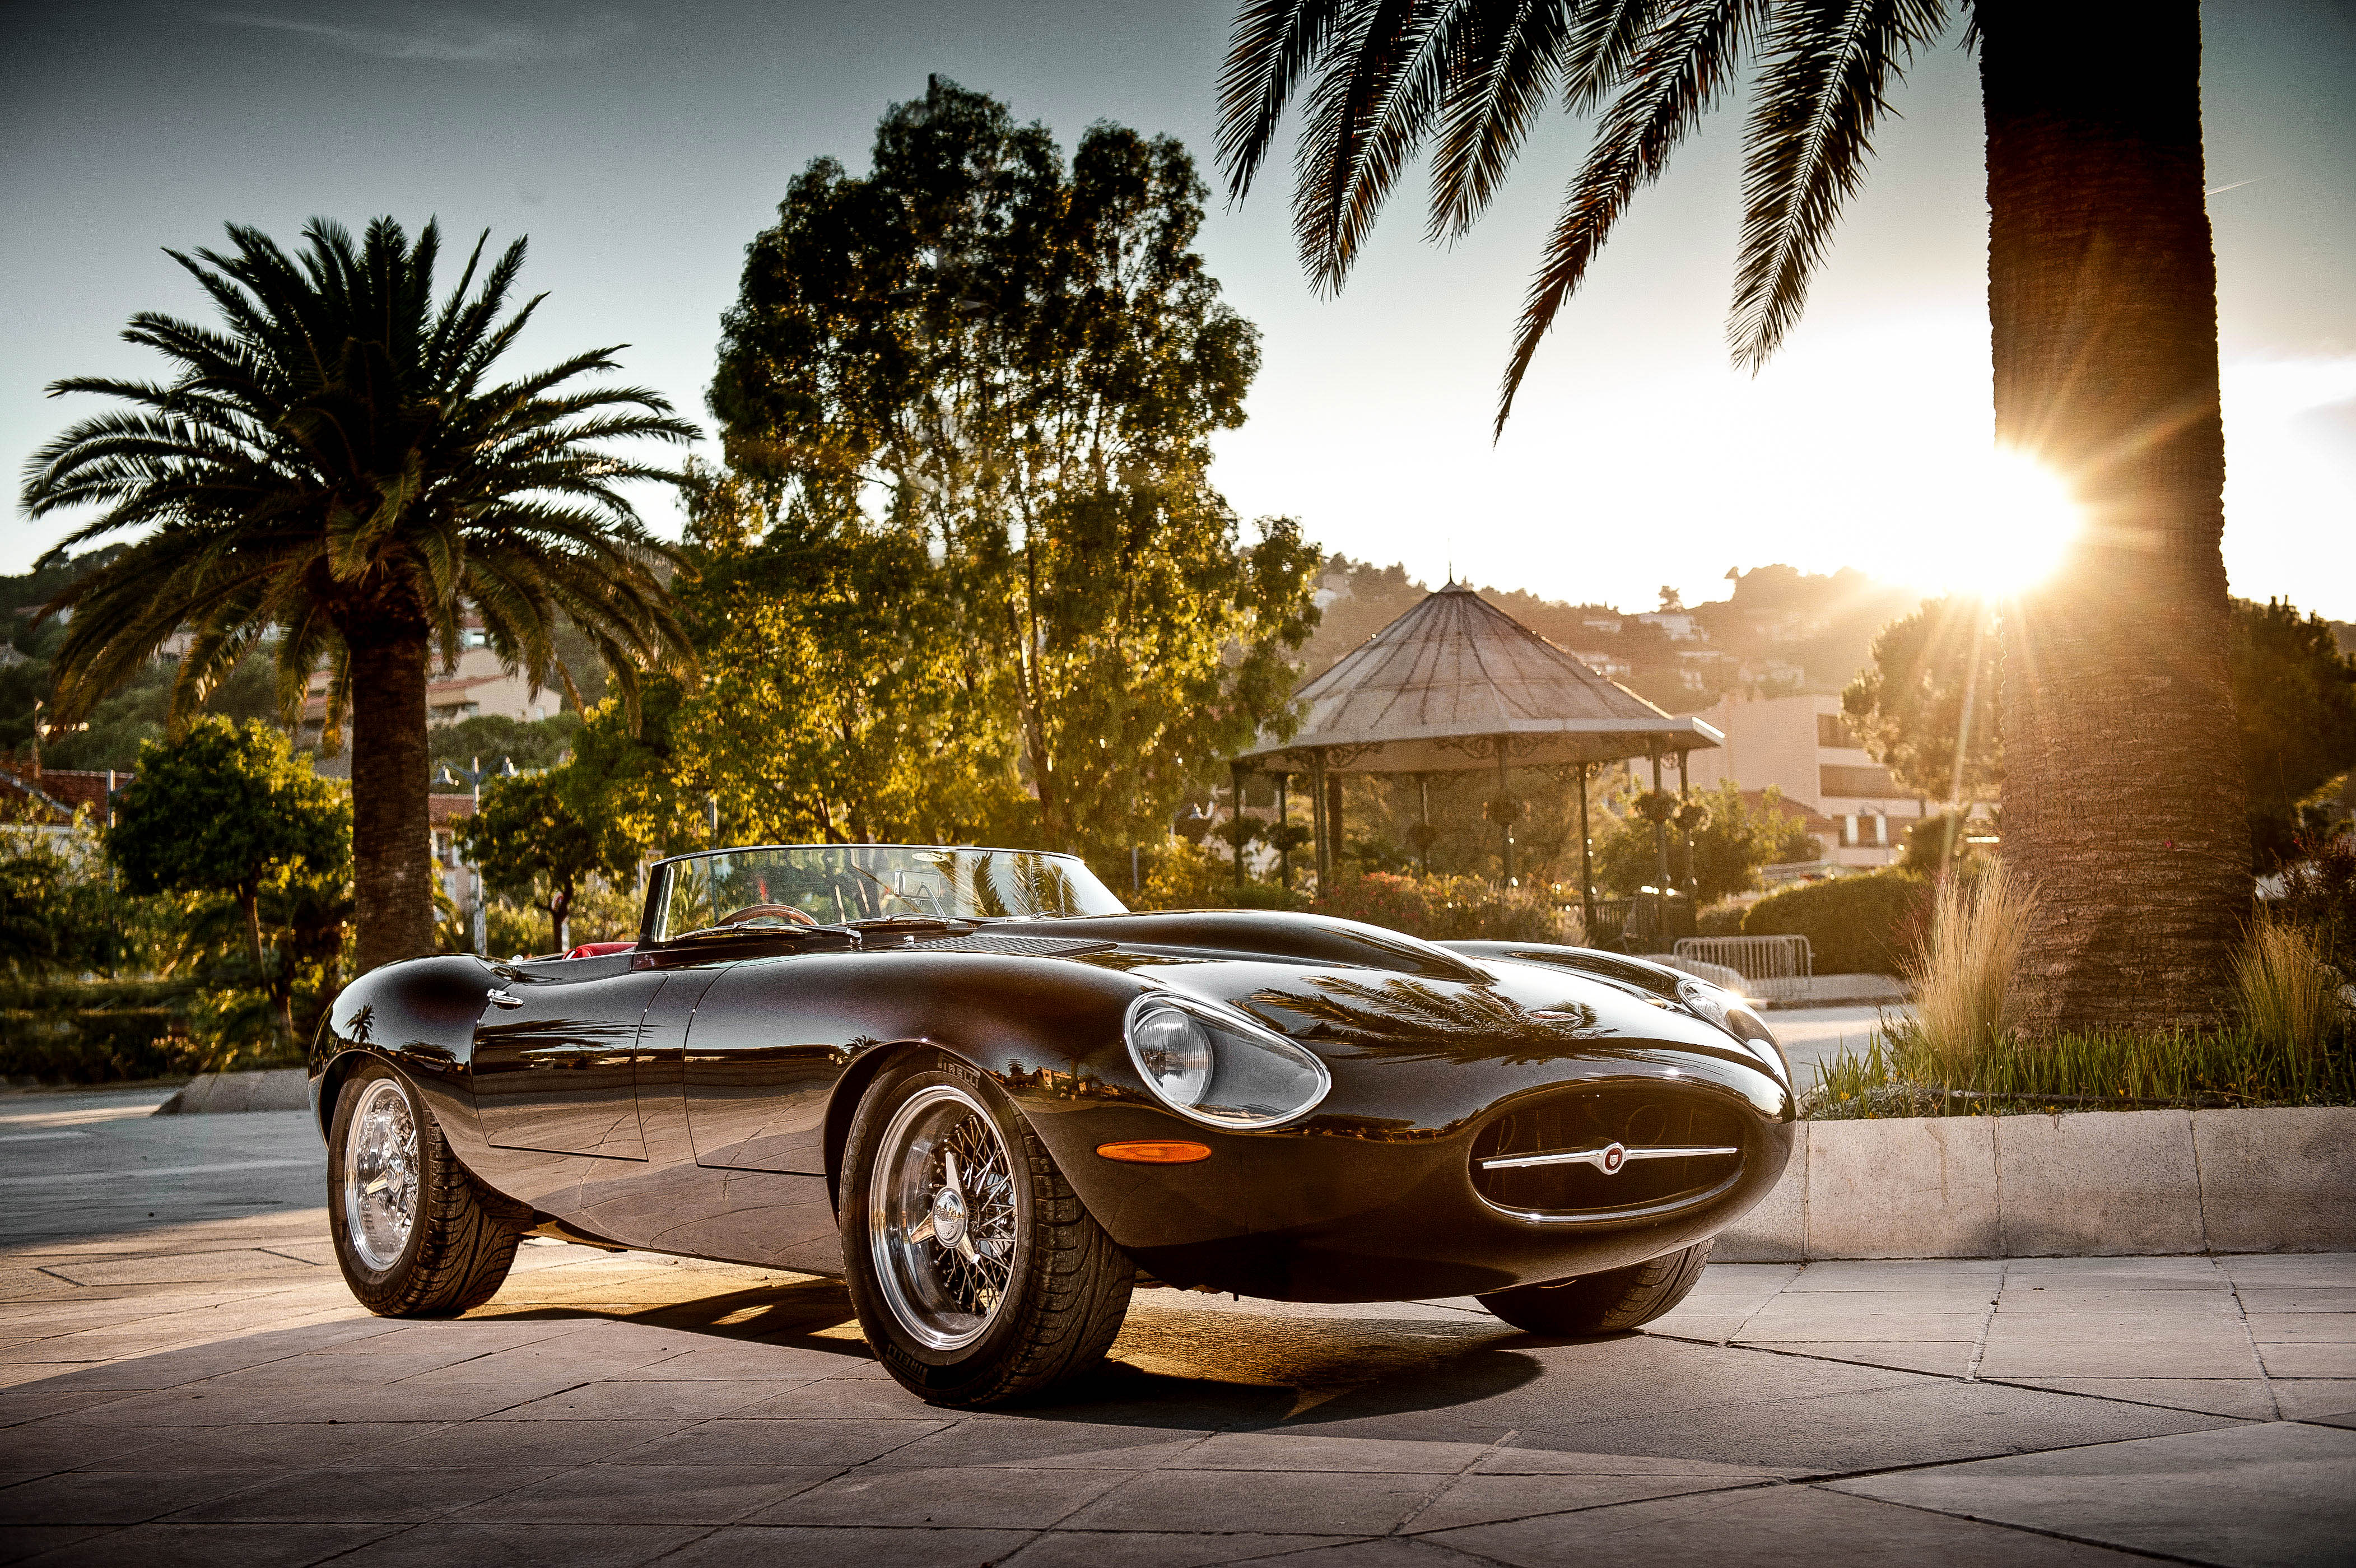 The Eagle E-Type adds modern touches to a classic